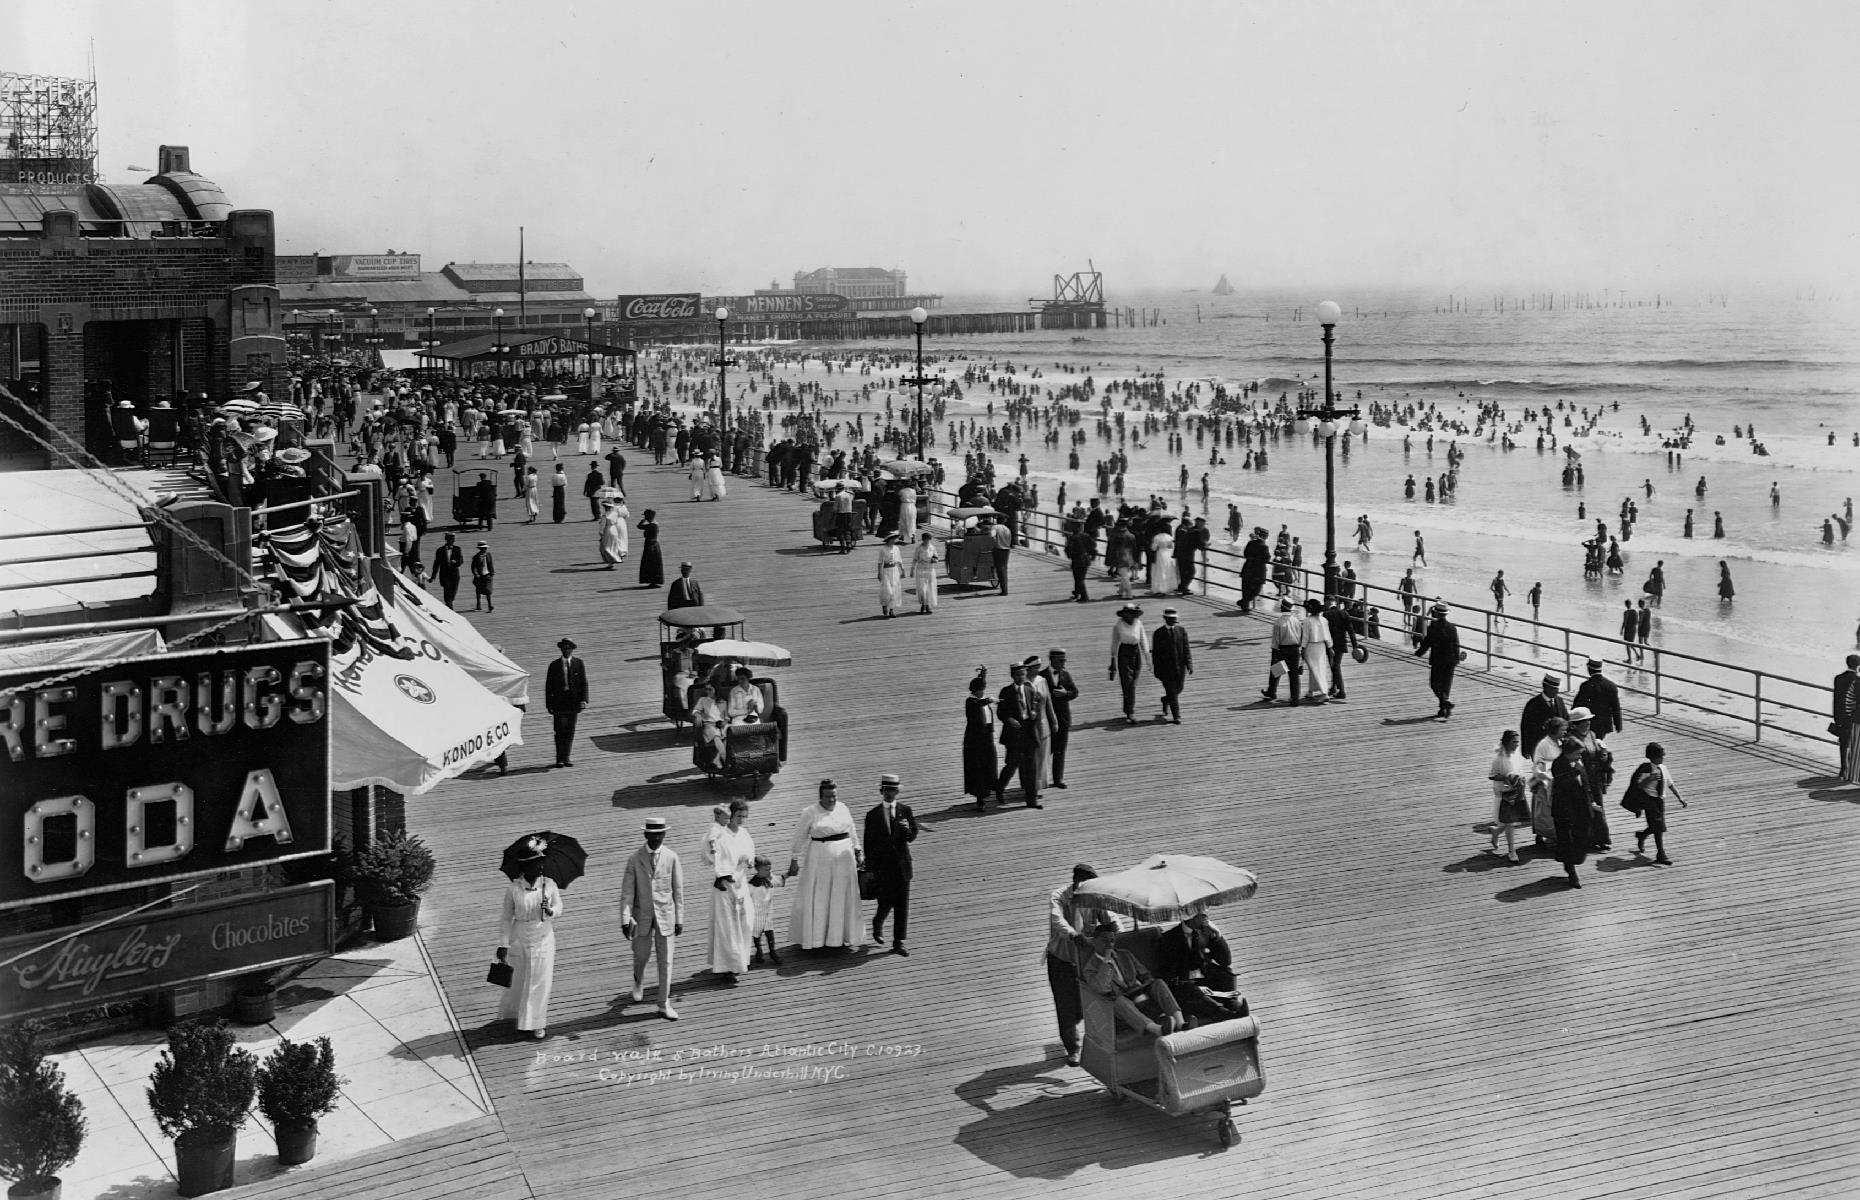 Slide 2 of 47: Atlantic City's beachside boardwalk has been a premier East Coast attraction since the 1870s, when the famous wooden pathway was first constructed. It's thought to be the first boardwalk of its kind in the United States, and has been lined with luxurious hotels, eclectic stores and restaurants since its earliest beginnings. Here vacationers wander the seaside boulevard on a sunny day in summer 1915.